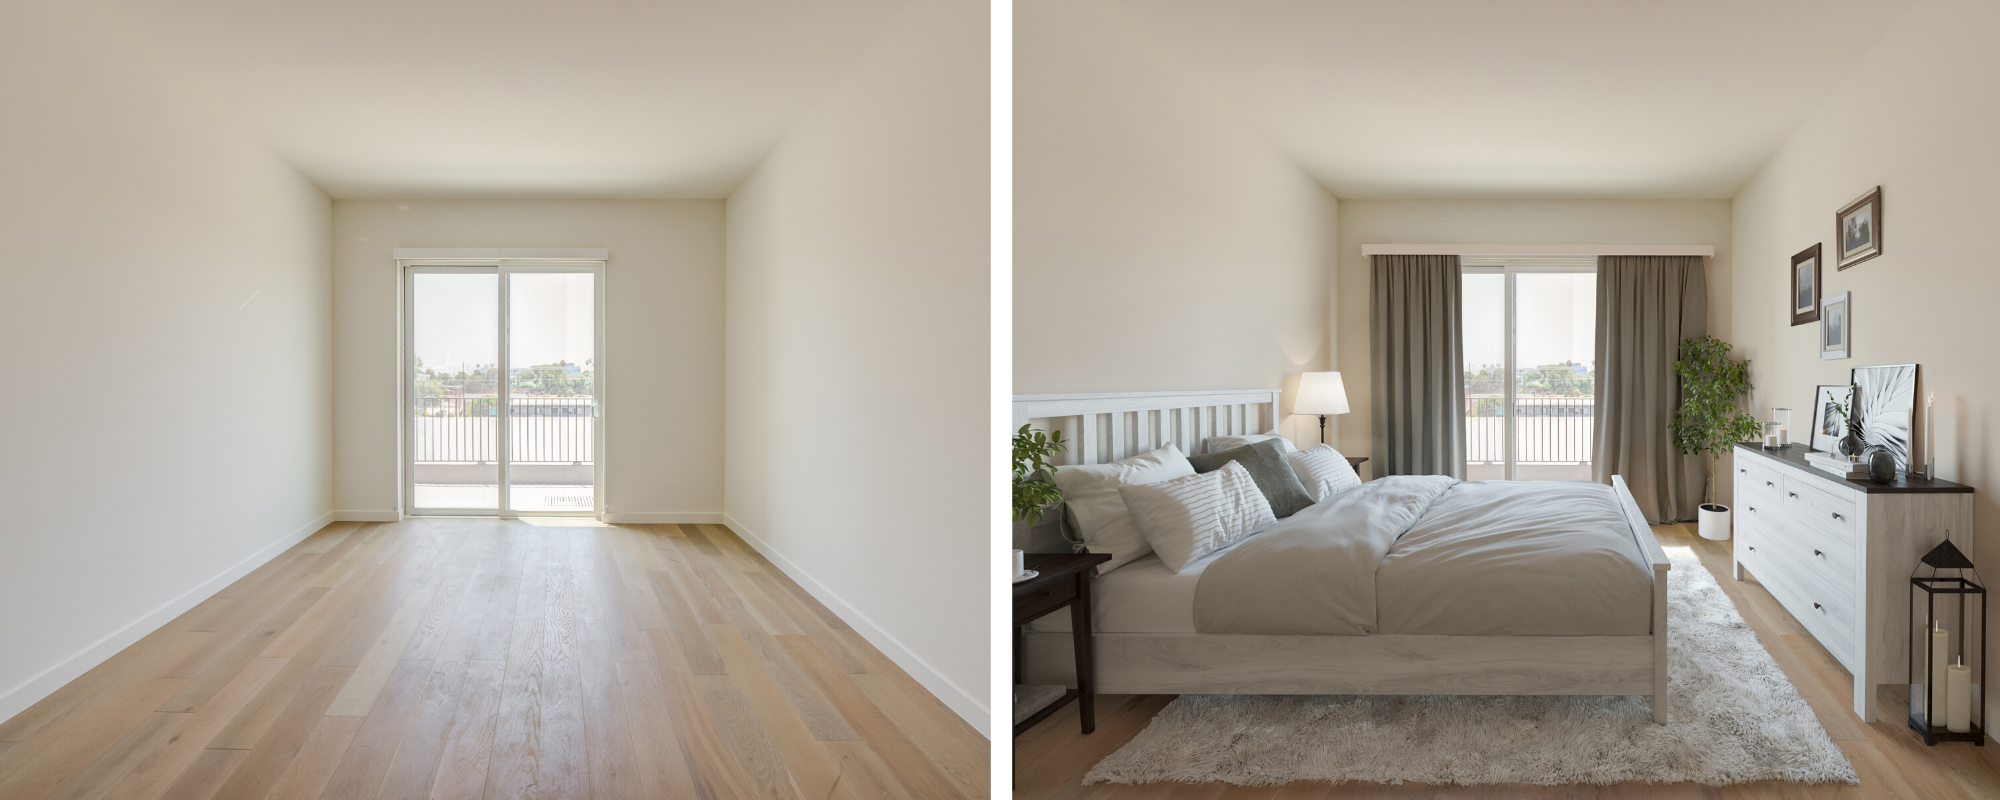 Virtual Staging - Guest Bedroom